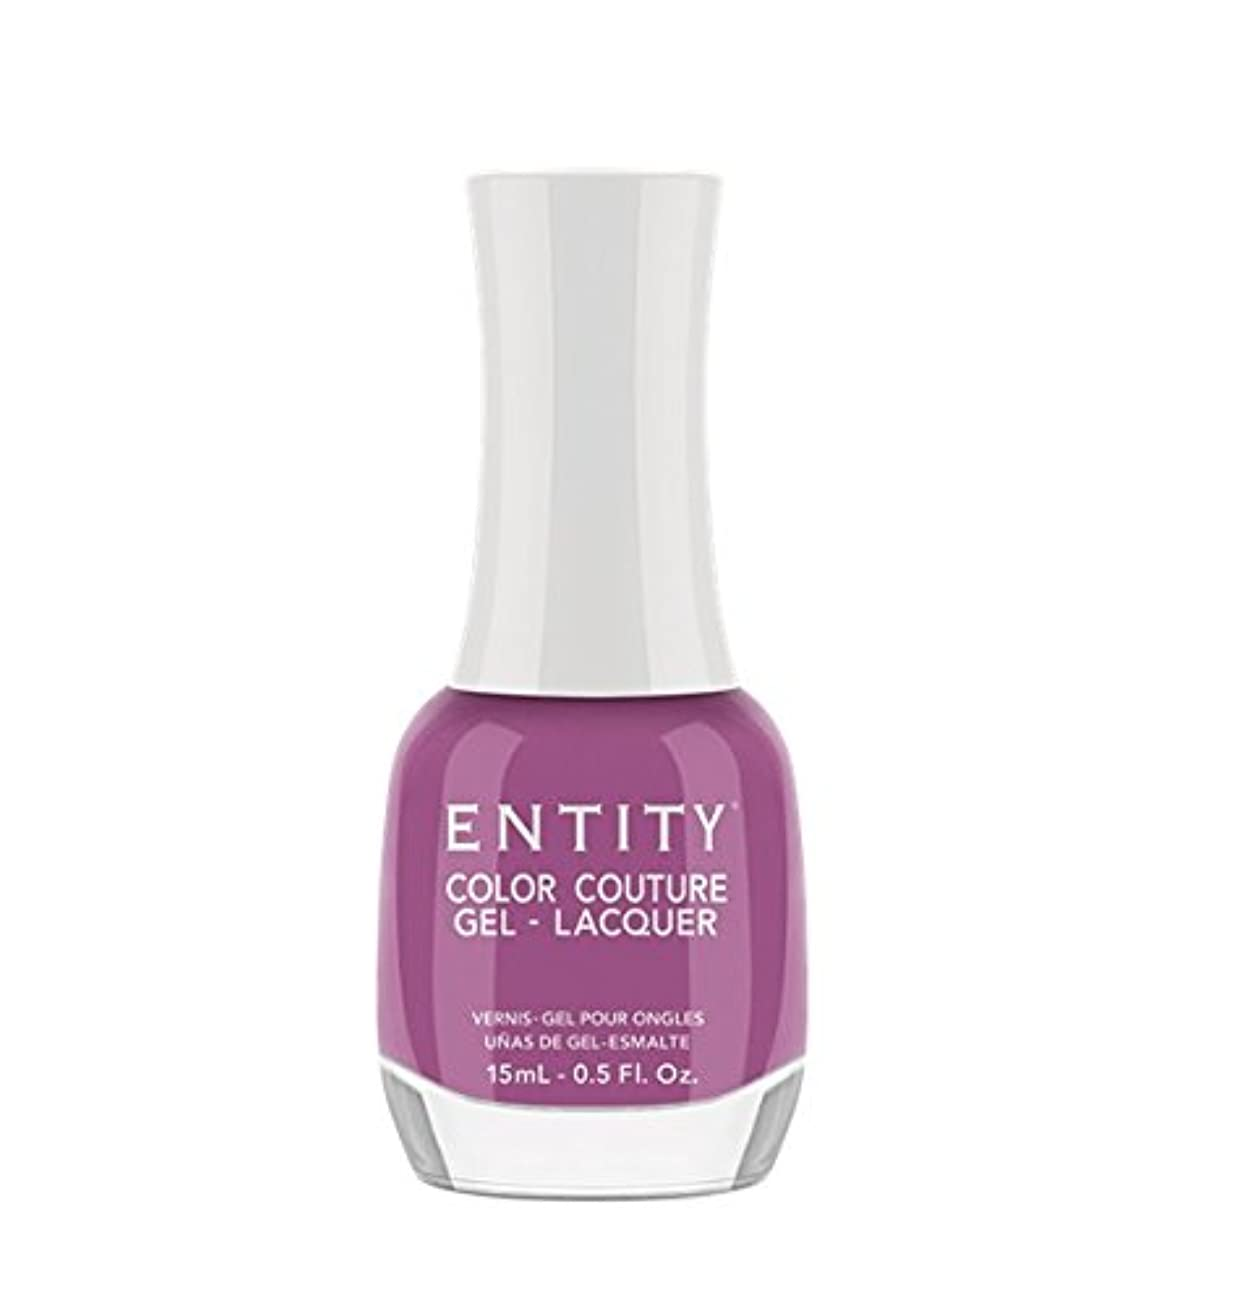 Entity Color Couture Gel-Lacquer - Beauty Ritual - 15 ml/0.5 oz